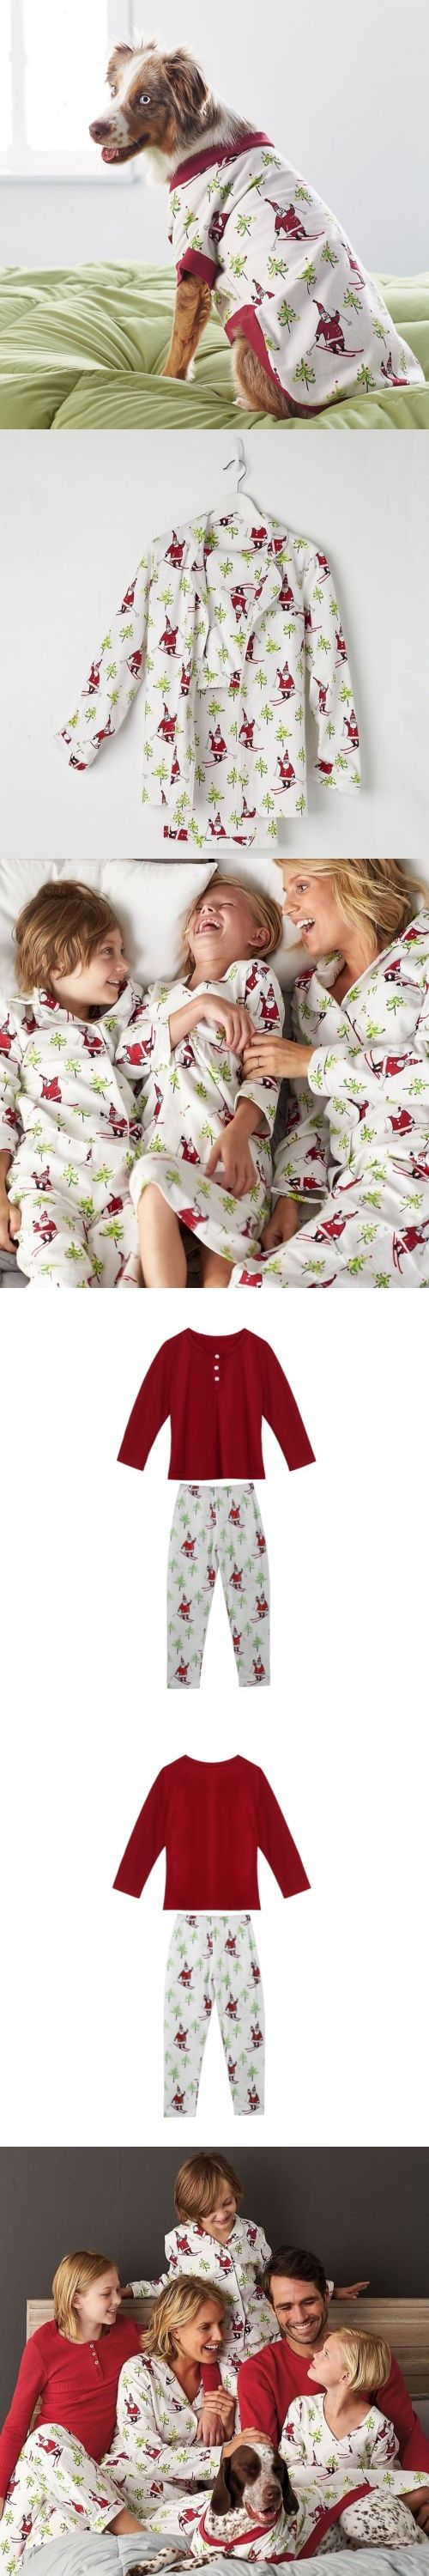 Pudcoco 2PCS Family Matching Christmas Pajamas Set Women Baby Kids Xmas Print Long Sleeve Cotton Soft Sleepwear Nightwear